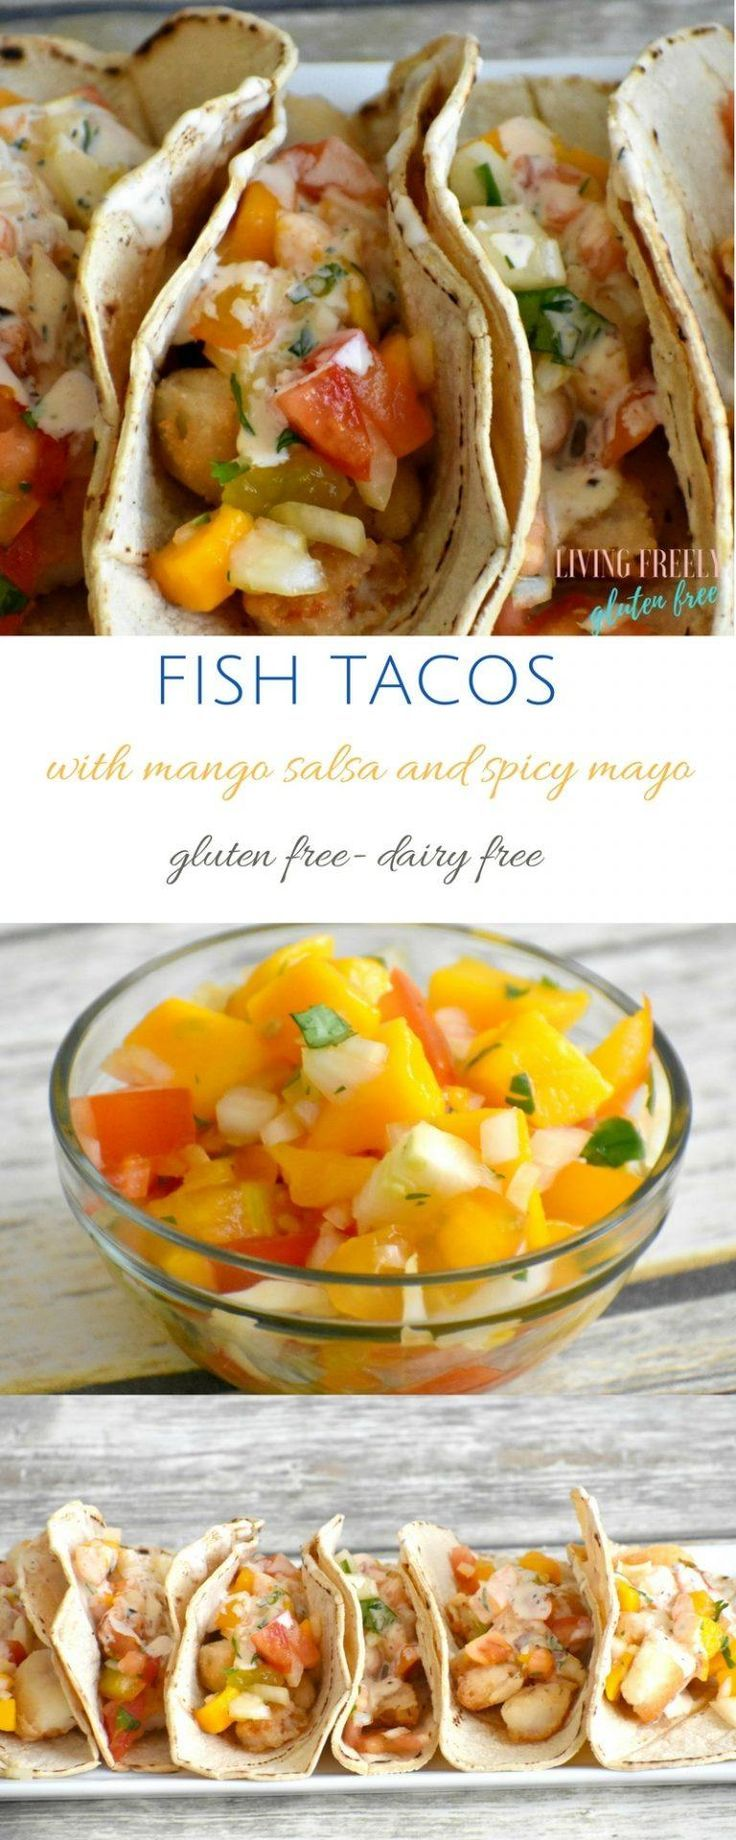 Easy Gluten Free Fish Tacos with Mango Salsa that are simple and full of amazing…